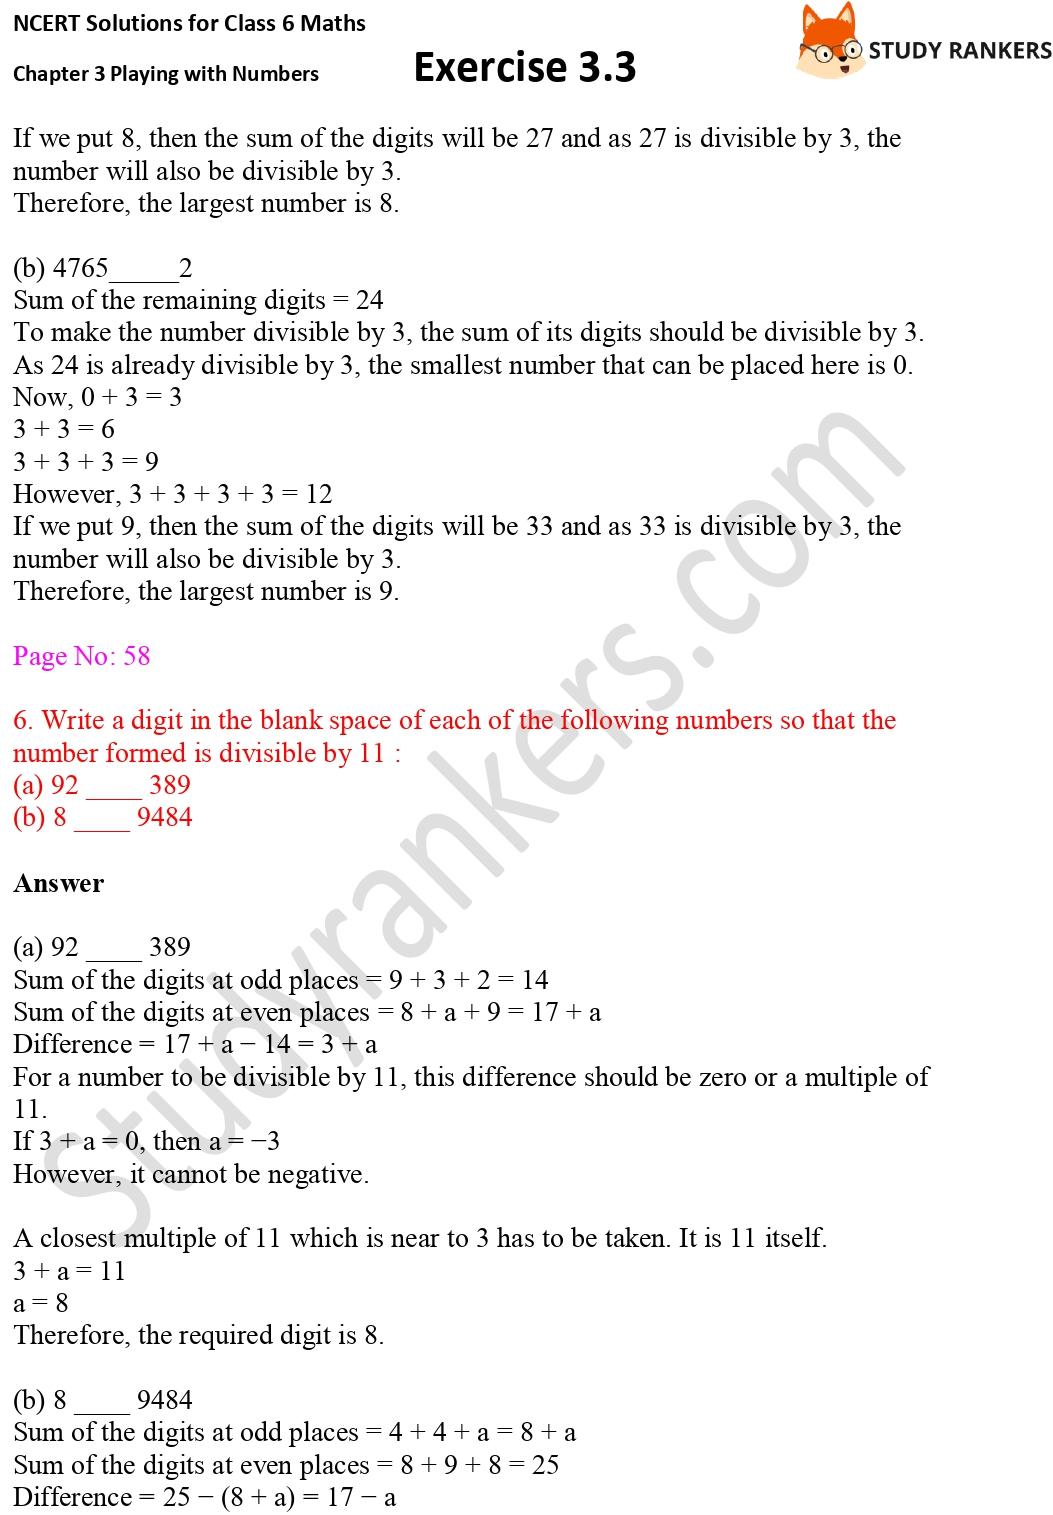 NCERT Solutions for Class 6 Maths Chapter 3 Playing with Numbers Exercise 3.3 Part 6